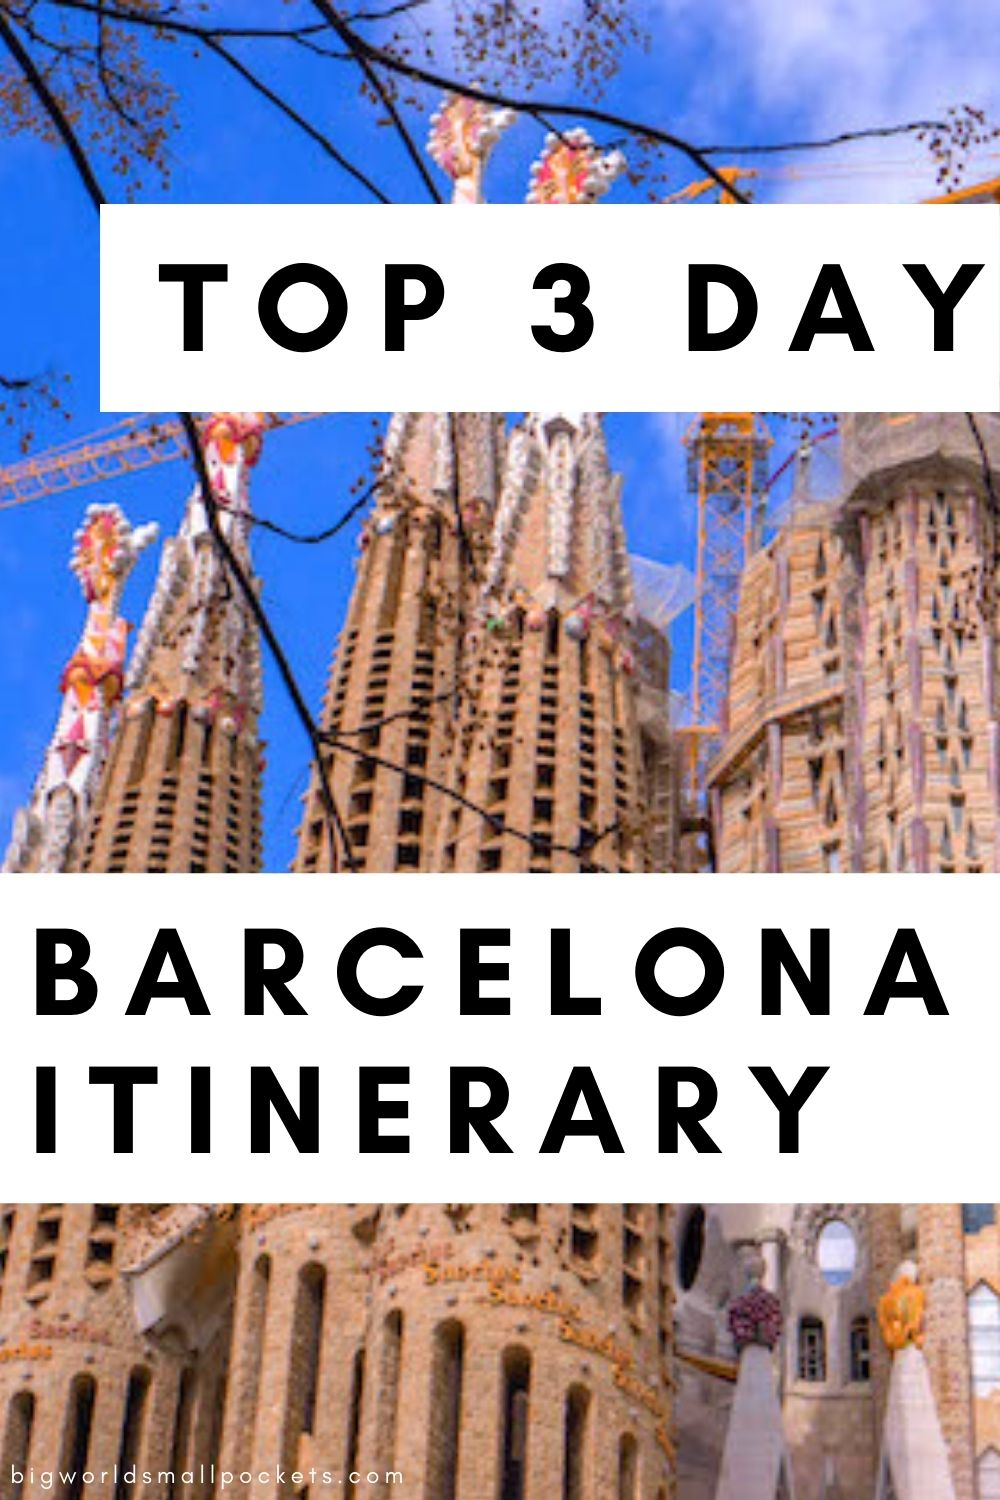 The Best 3 Day Barcelona Itinerary